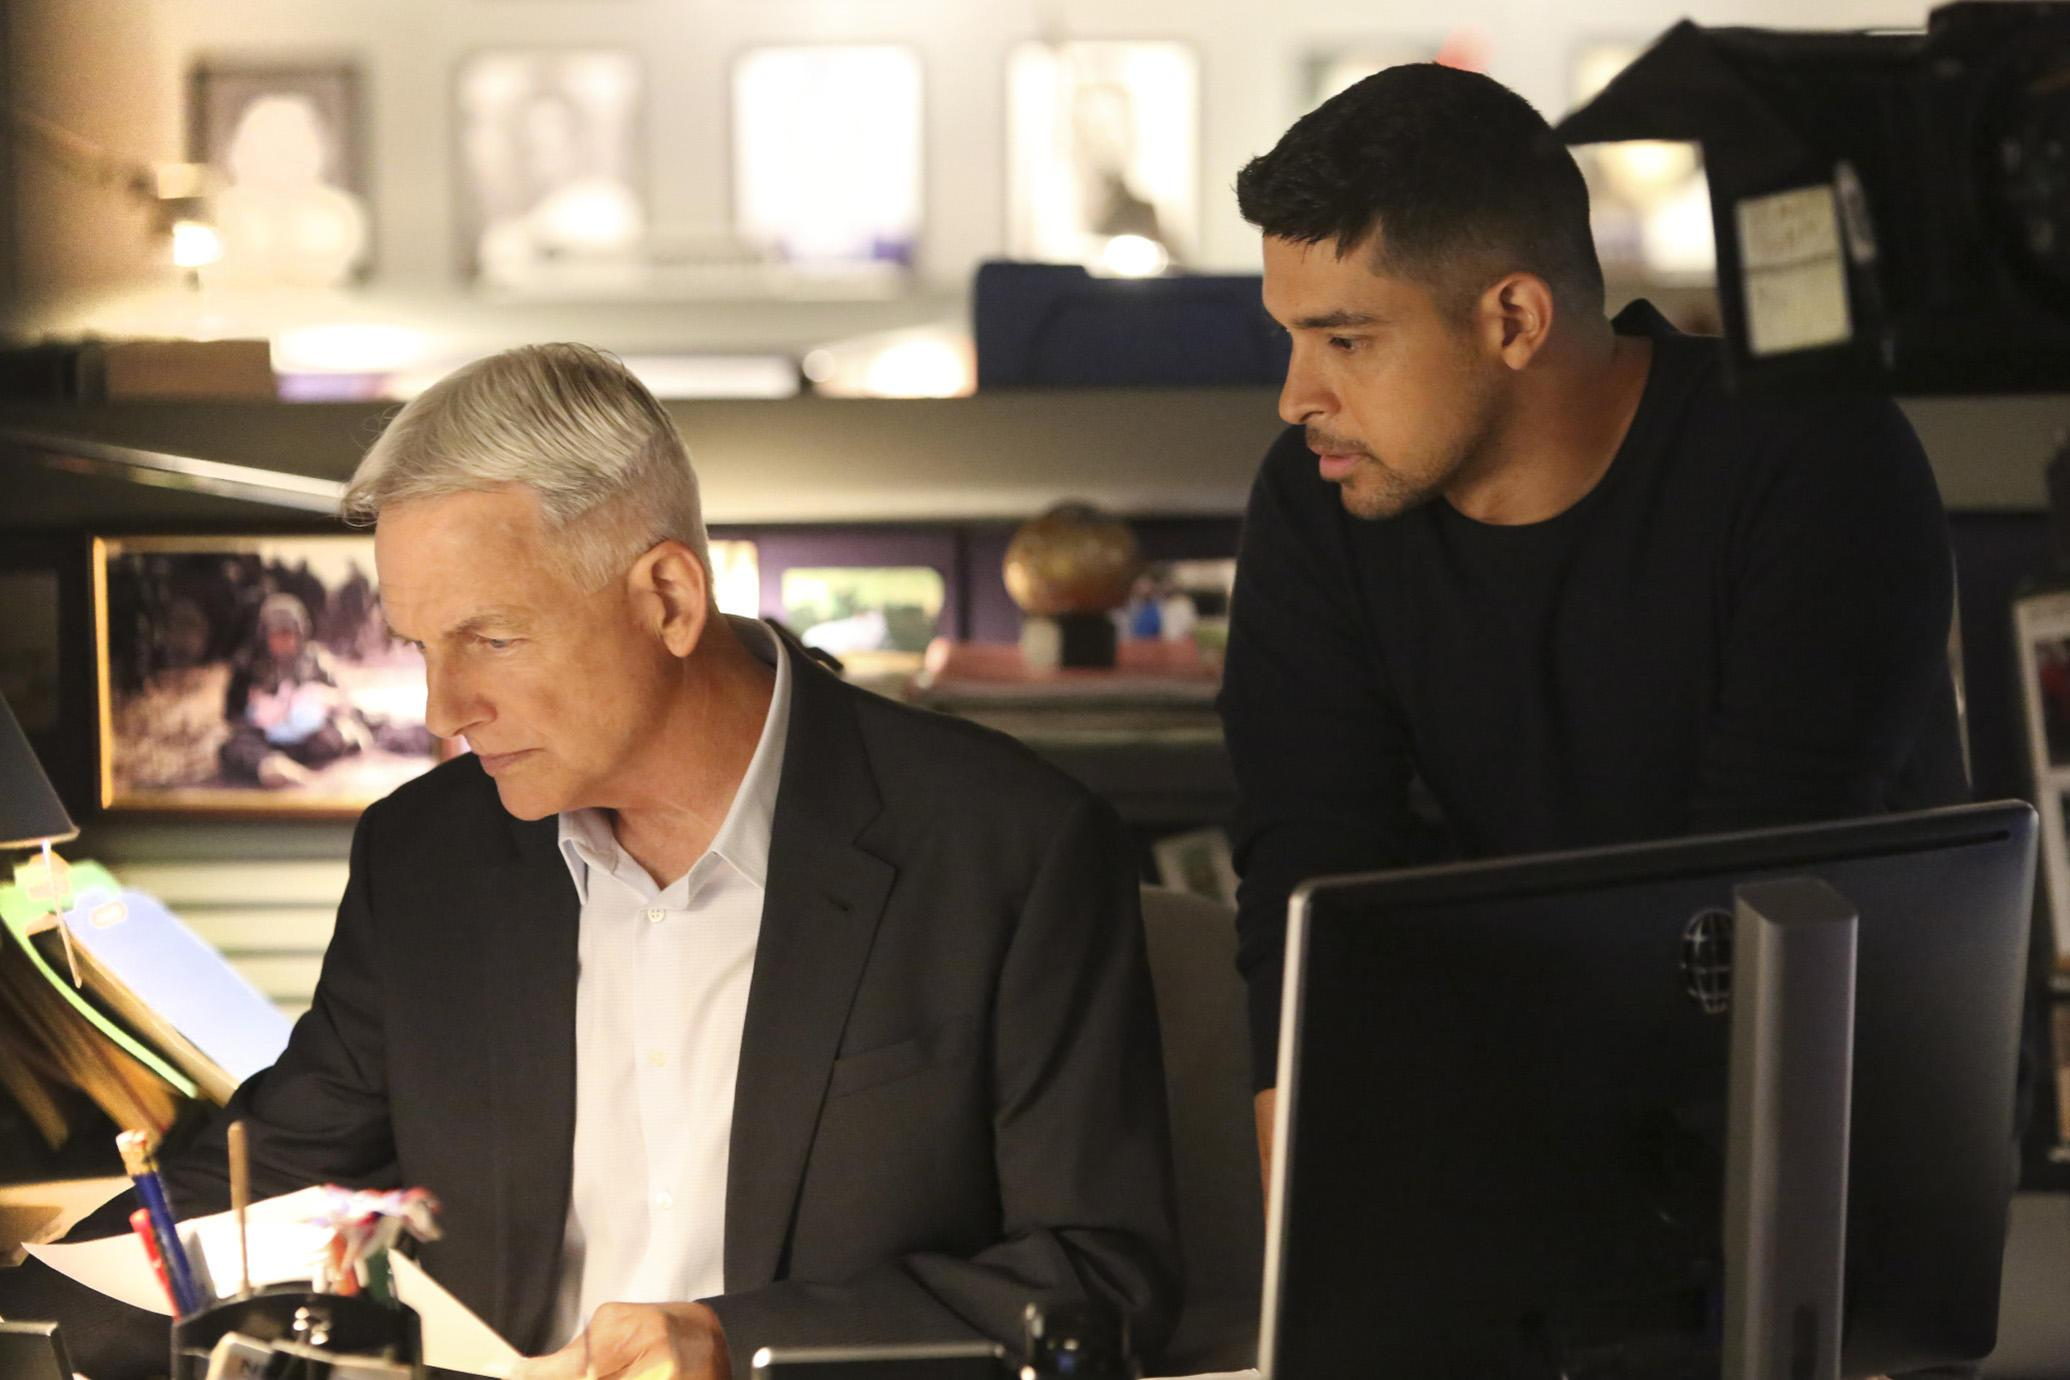 CBS Made a Powerful Statement on Deportations With This Week's Episode of 'NCIS'